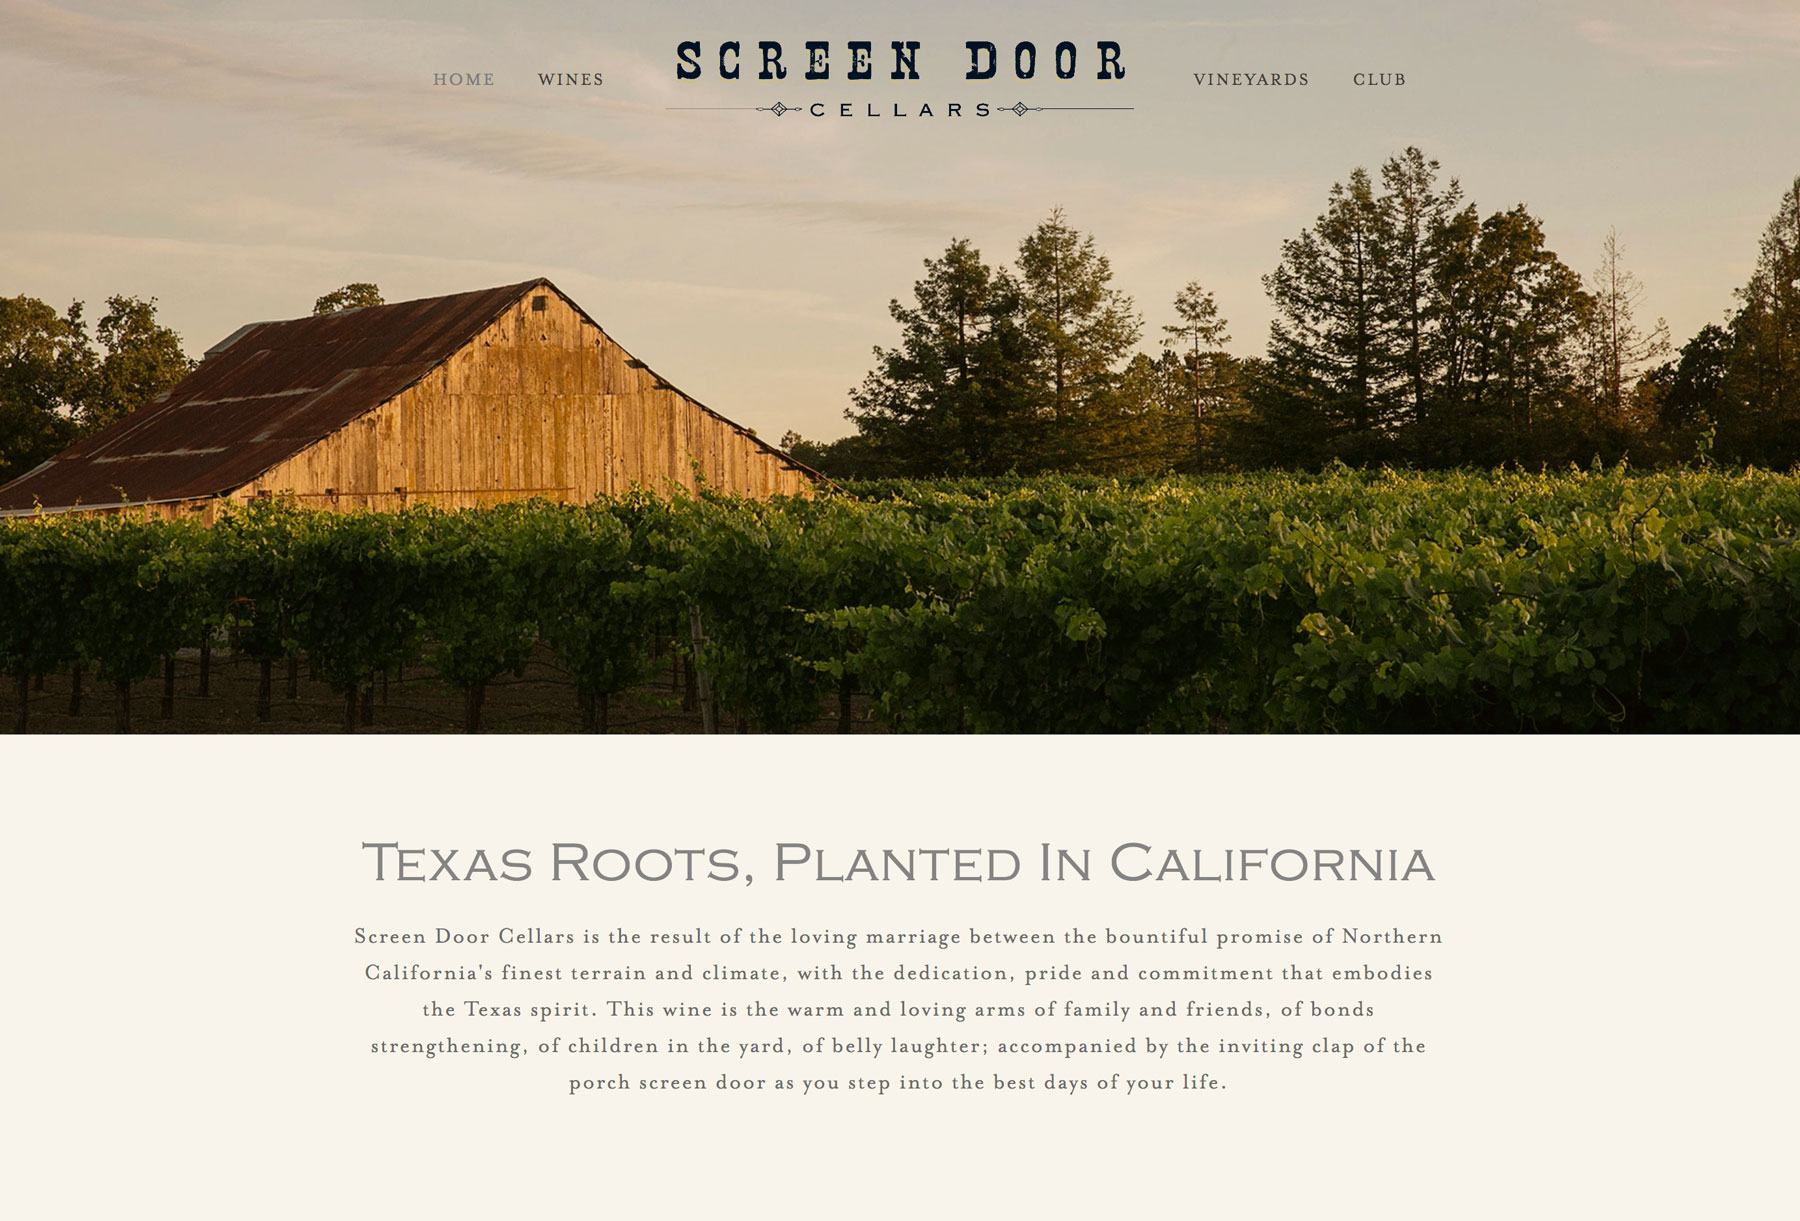 Etonnant Our Squarespace Website Package Was The Perfect Fit For Screen Door Cellars.  It Provided A Clean, Modern Canvas To Show Off The Best Winery Photos And  Tell ...